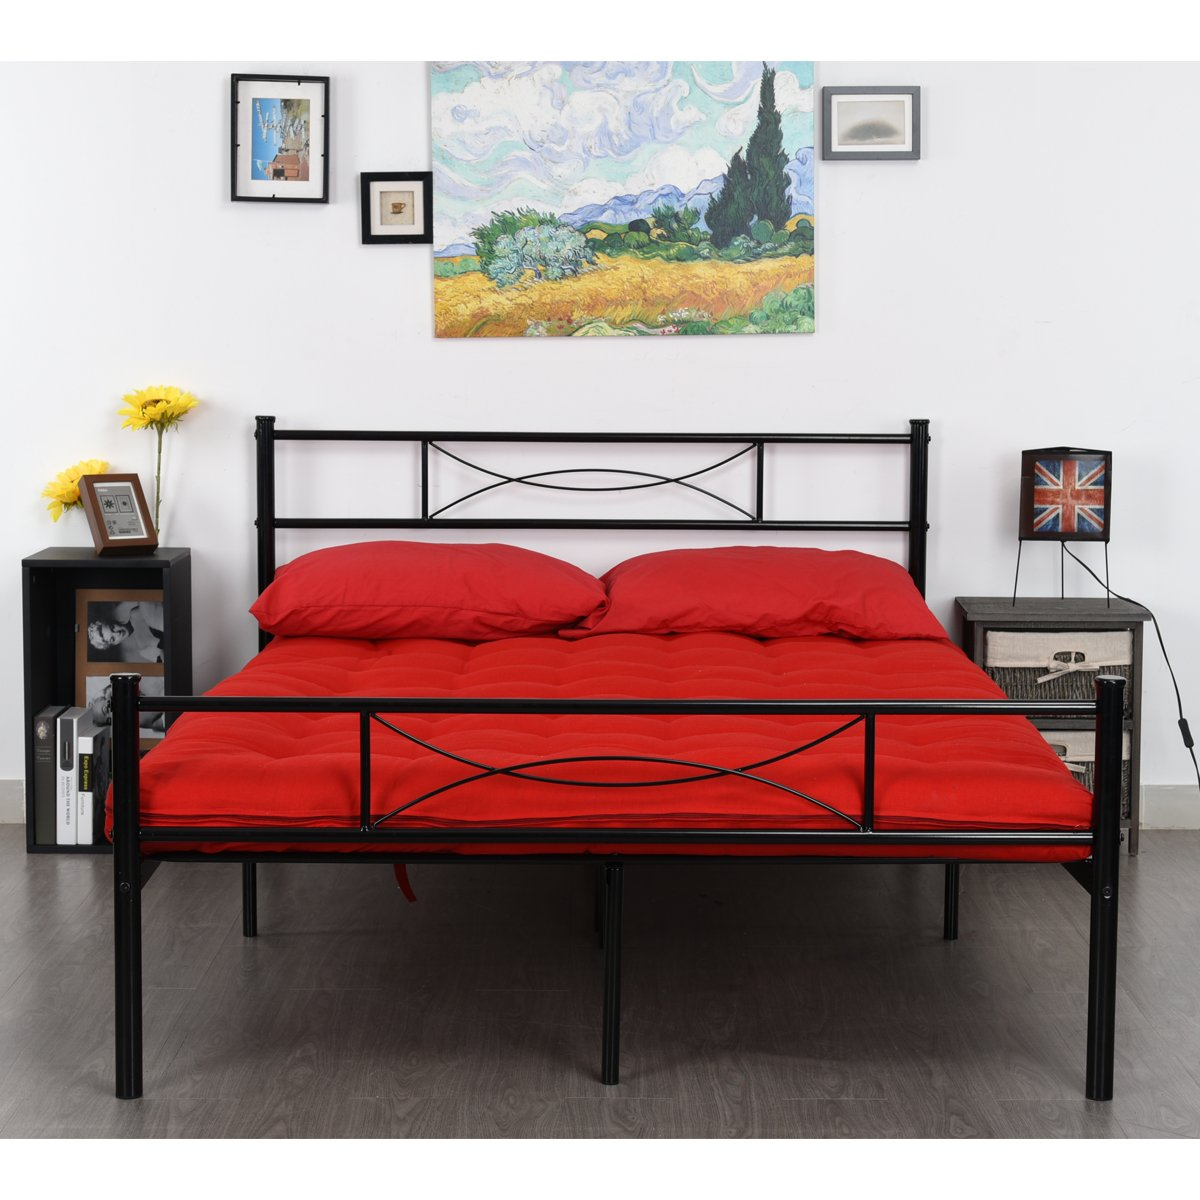 GIME Metal Bed Frame Full Size, 10 Legs Mattress Foundation Two Headboards Black Platform Bed Frame Box Spring Replacement, Black